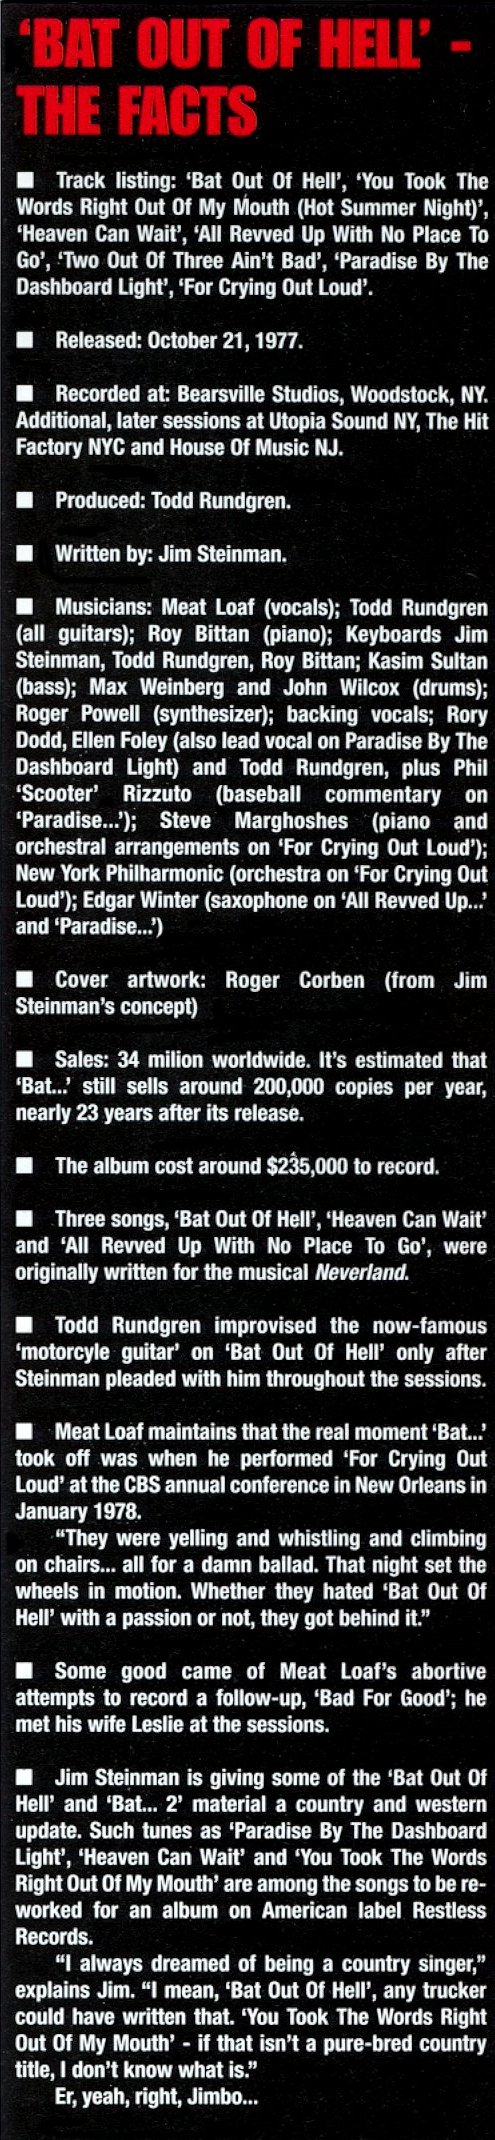 Bat Out Of Hell - The Facts (scan of magazine info box - text is below)